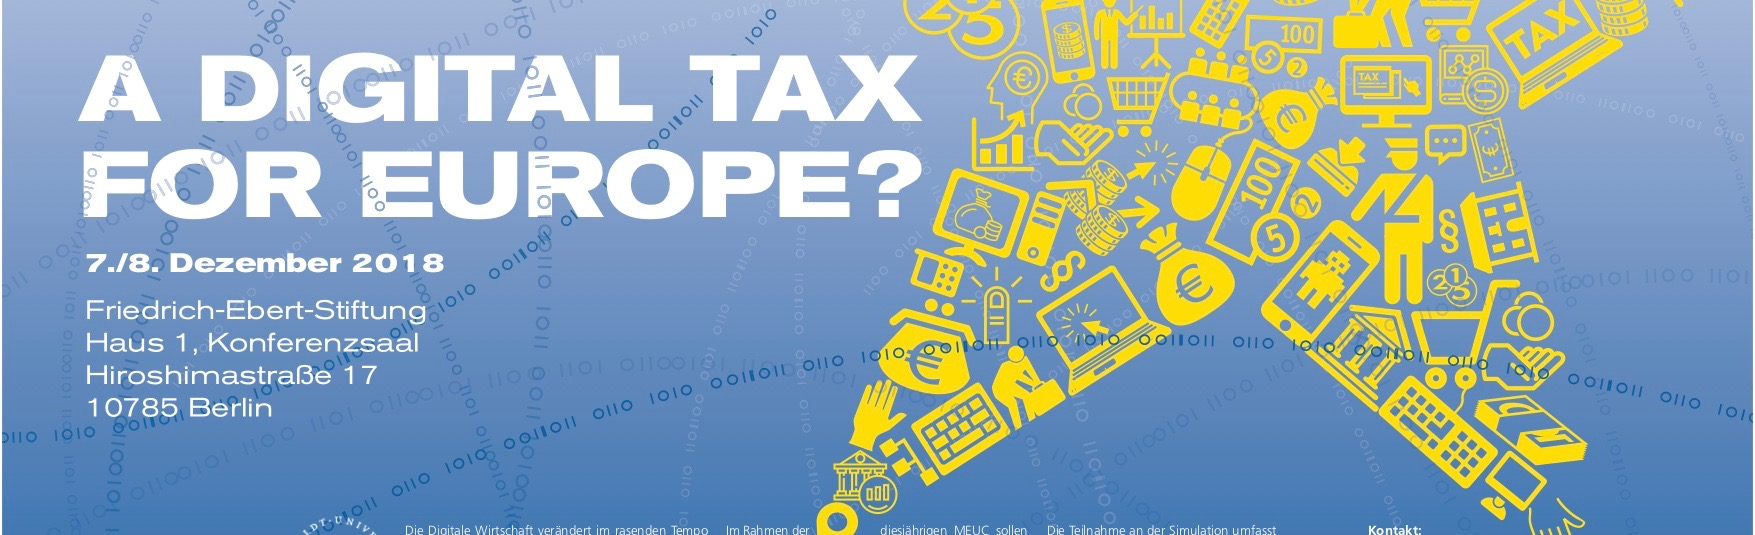 A Digital Tax for Europe?